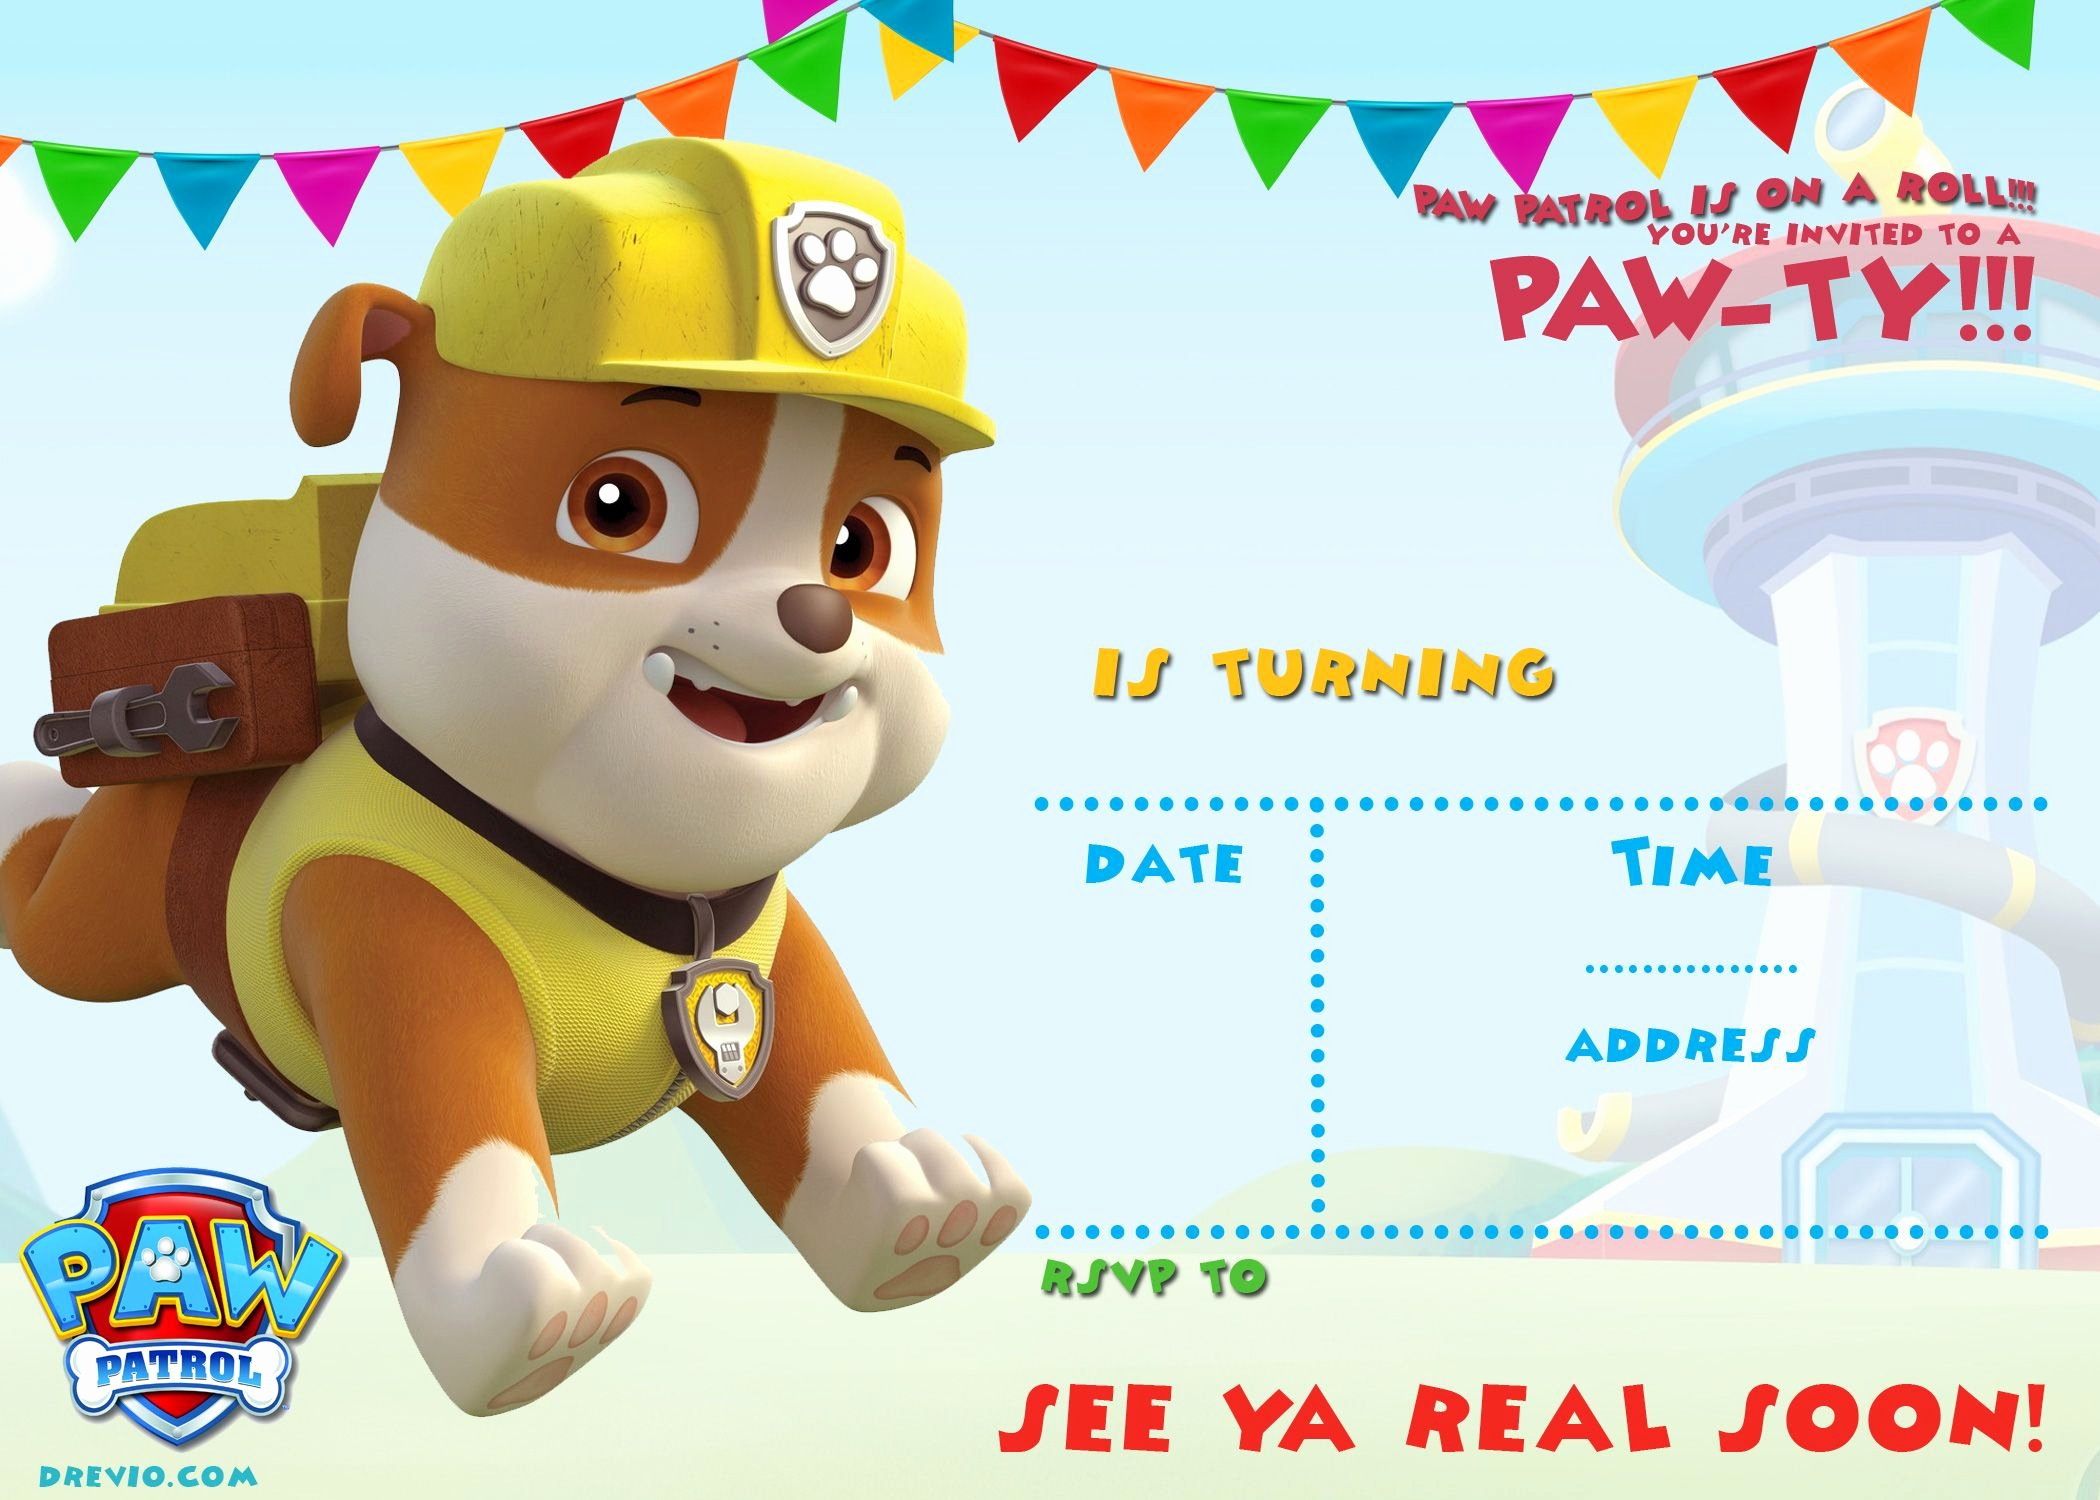 Paw Patrol Invitation Template Free Unique Free Printable Paw Patrol Invitation Template All